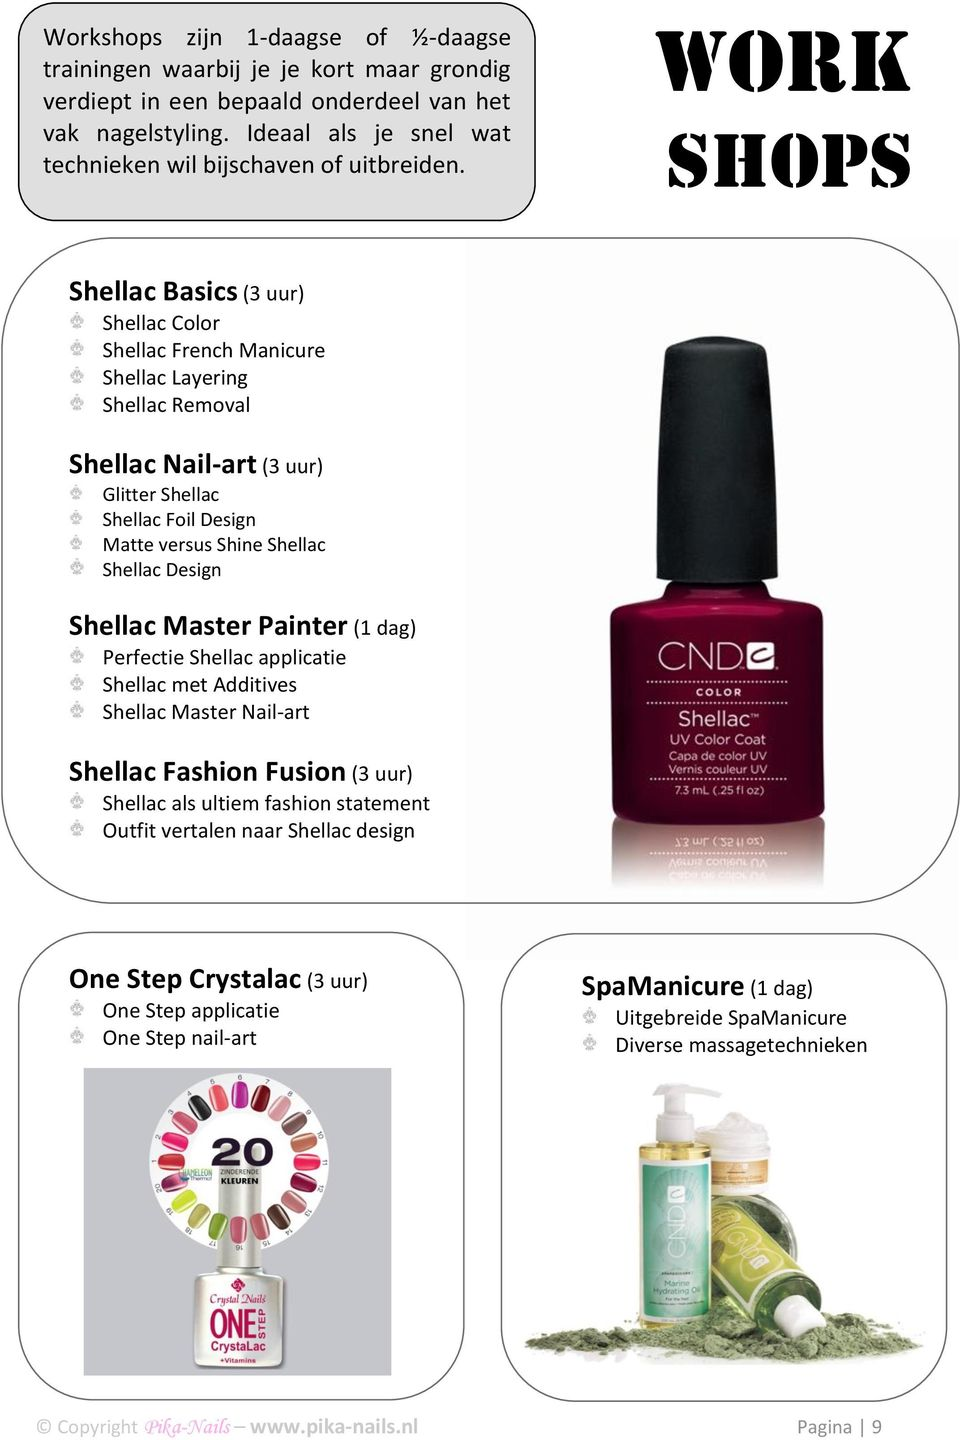 Work Shops Shellac Basics (3 uur) Shellac Color Shellac French Manicure Shellac Layering Shellac Removal Shellac Nail-art (3 uur) Glitter Shellac Shellac Foil Design Matte versus Shine Shellac